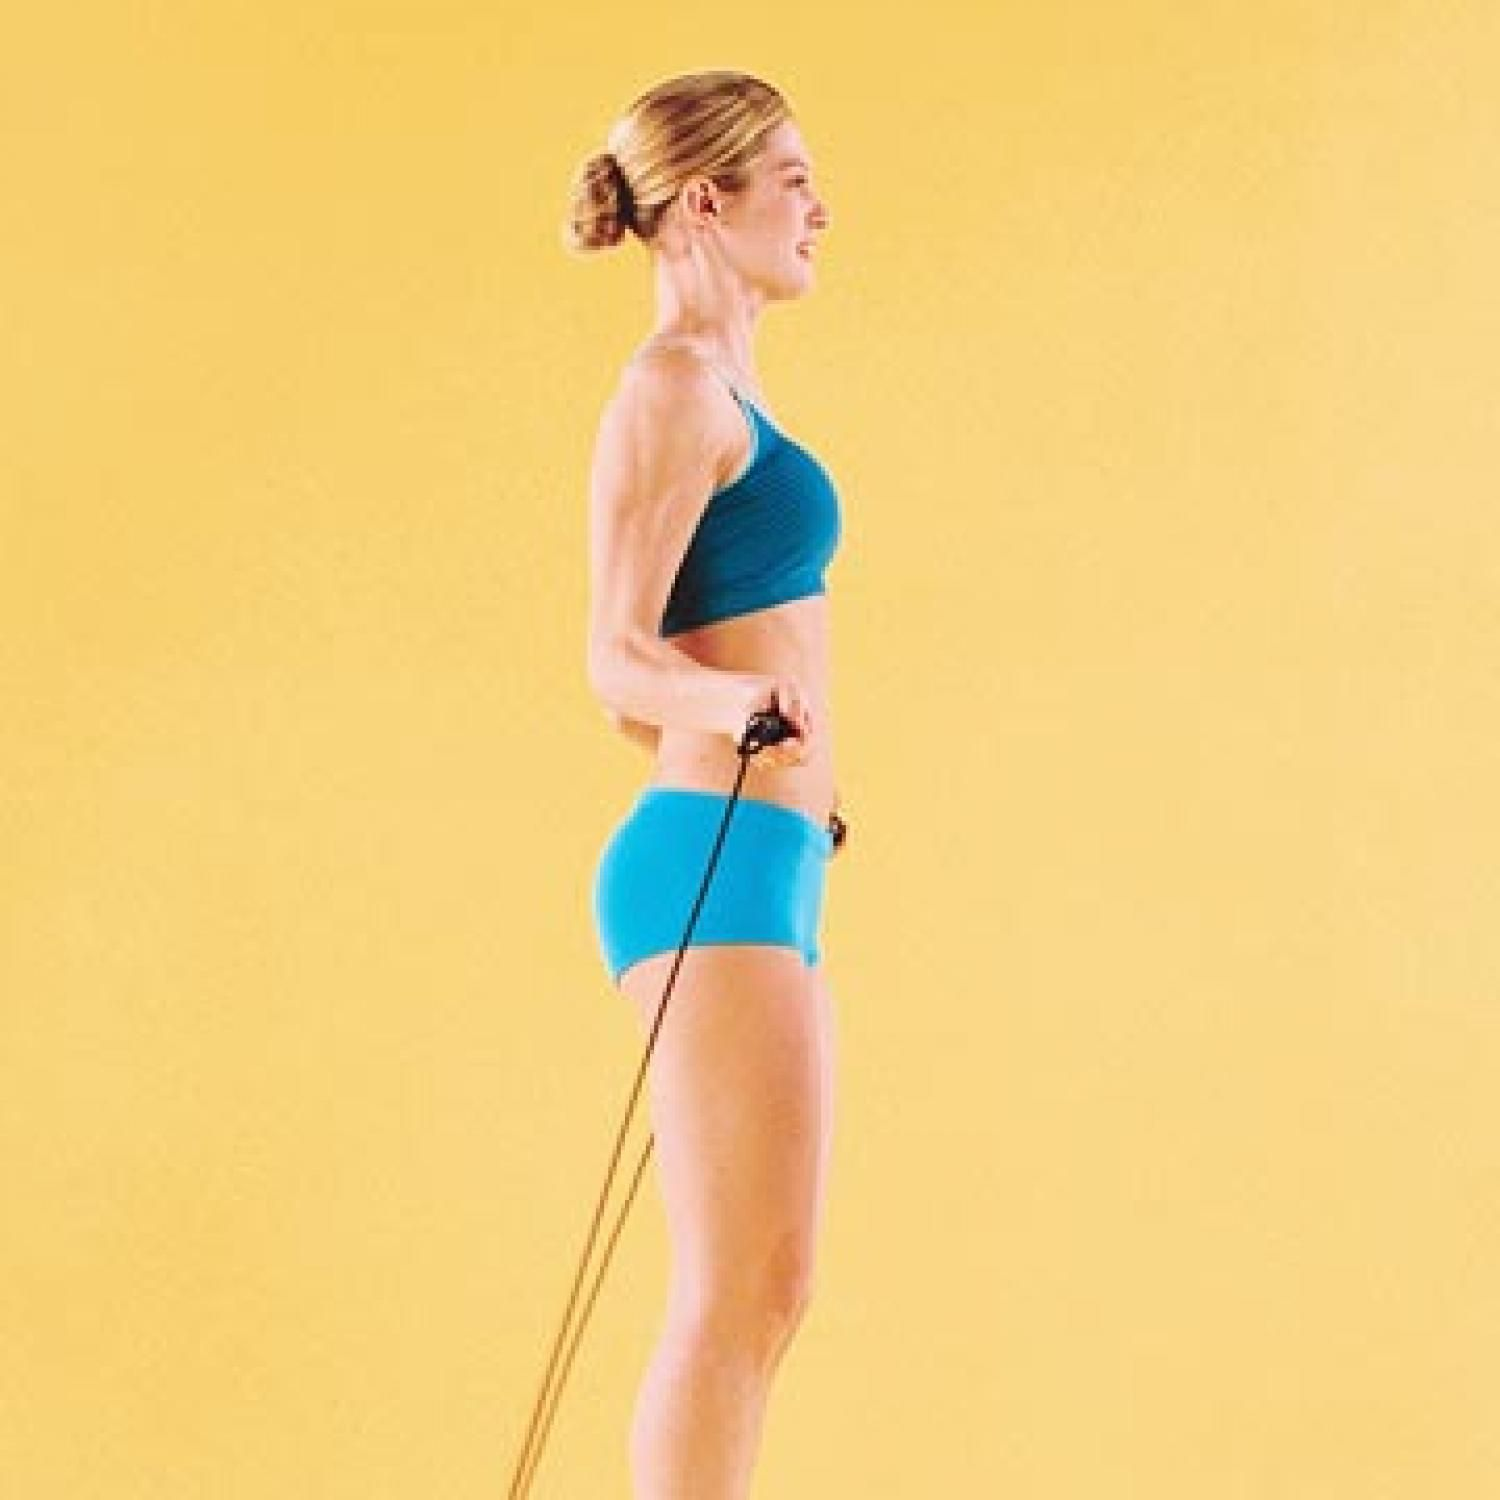 10 Minute Workout Jump Rope To Skip Yourself Slim Jump Rope Workout Jump Rope 10 Minute Workout